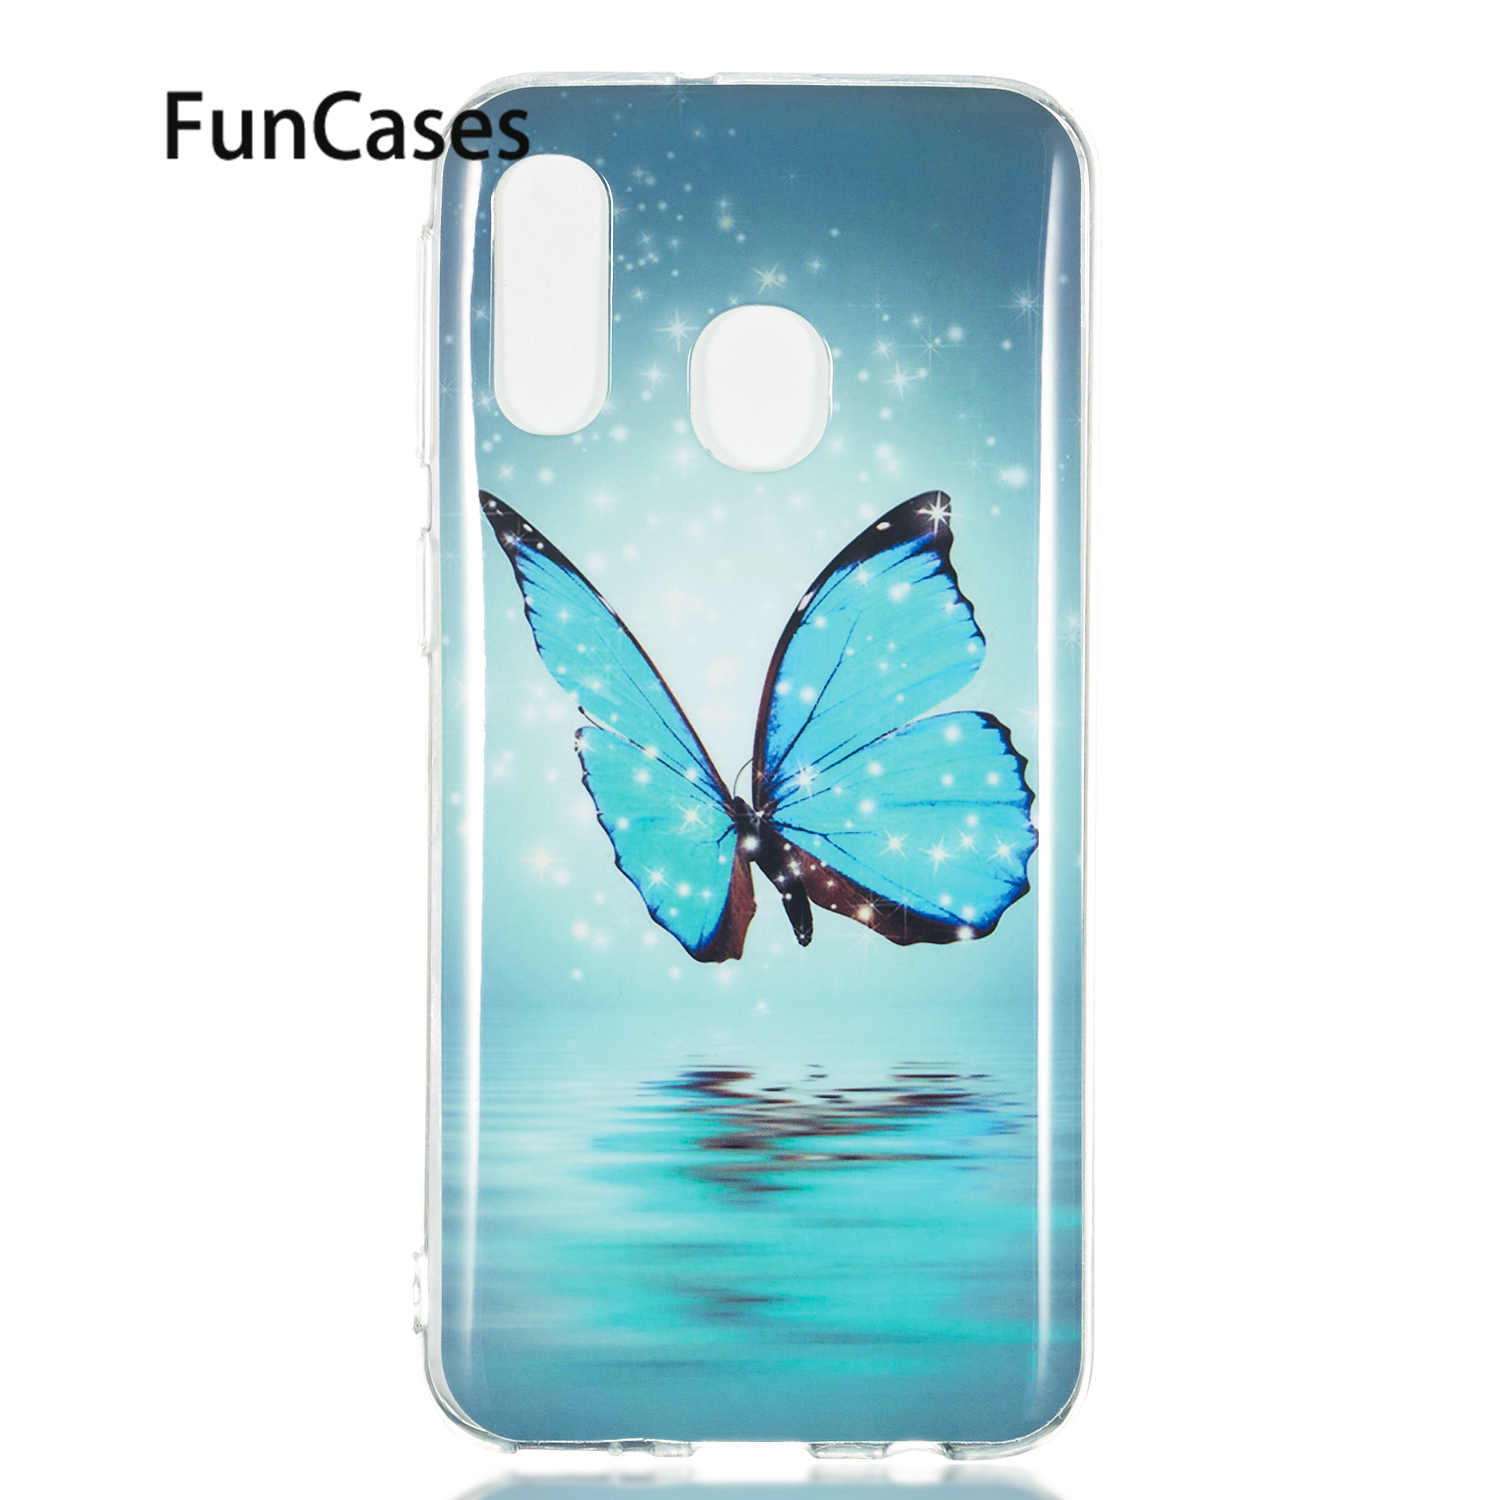 Phone Case For Samsung J7 2018 Soft Silicone Csse For Samsung Galaxy A40 A50 A6 2018 Plus A7 A750 A70 A8S A9 J2 Core J3 J4 J6 J8